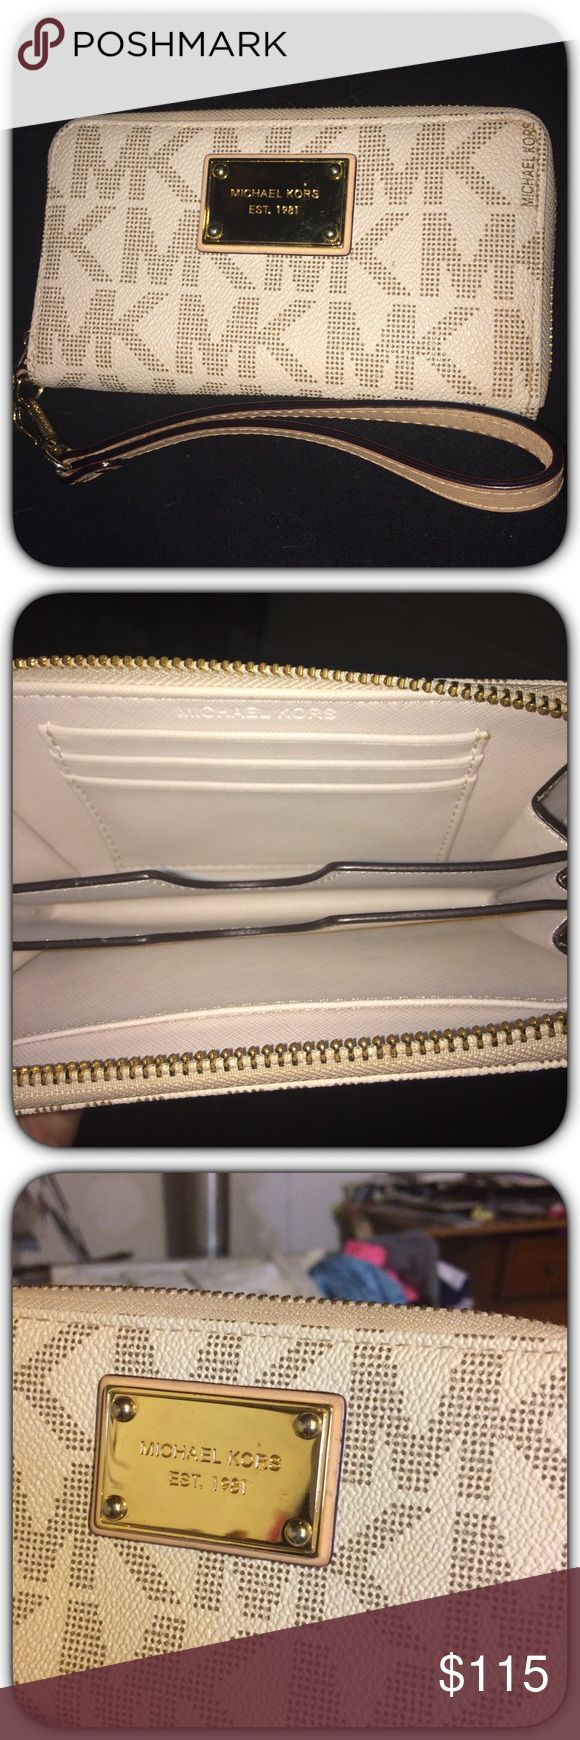 NWOT! Michael KORS Clutch w/ Cell Phone Case! NWOT! Authentic Michael KORS Wallet/ Clutch w/ Built In Cell Phone Carrier! Brand New & In Excellent Condition!!! See Picture Of The Flawless Gold Plate, Scratch/Smudge Free! Send email for lower offers! Michael Kors Bags Wallets